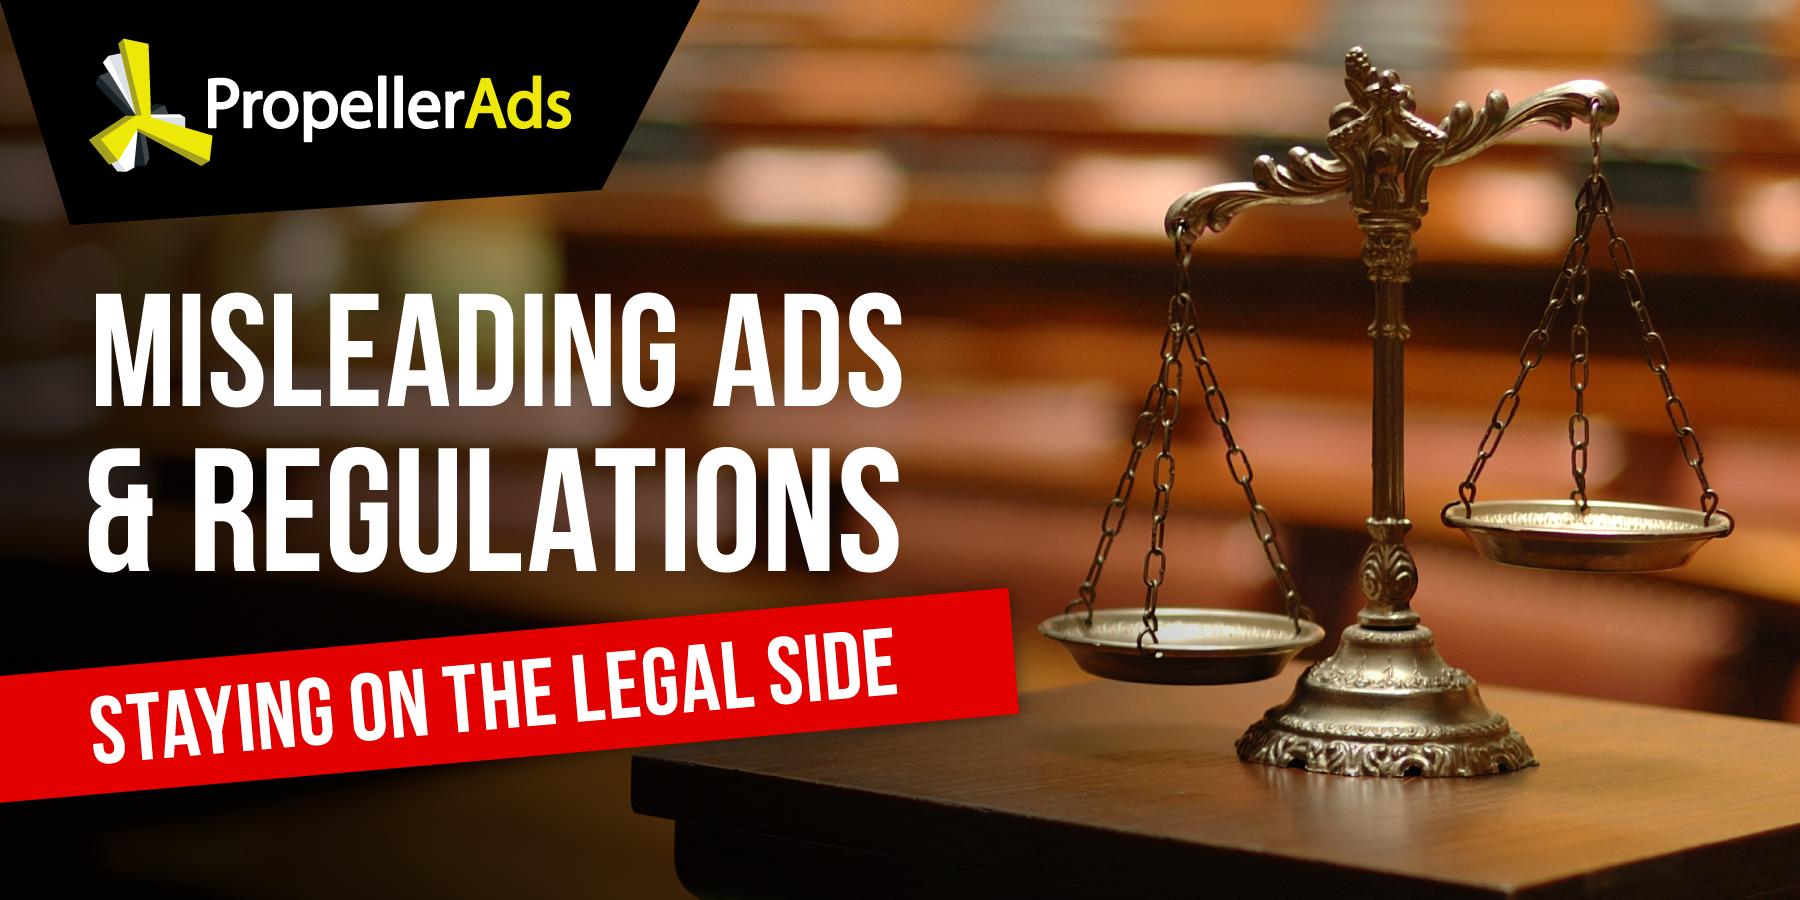 Misleading Ads & Regulations Around the Globe